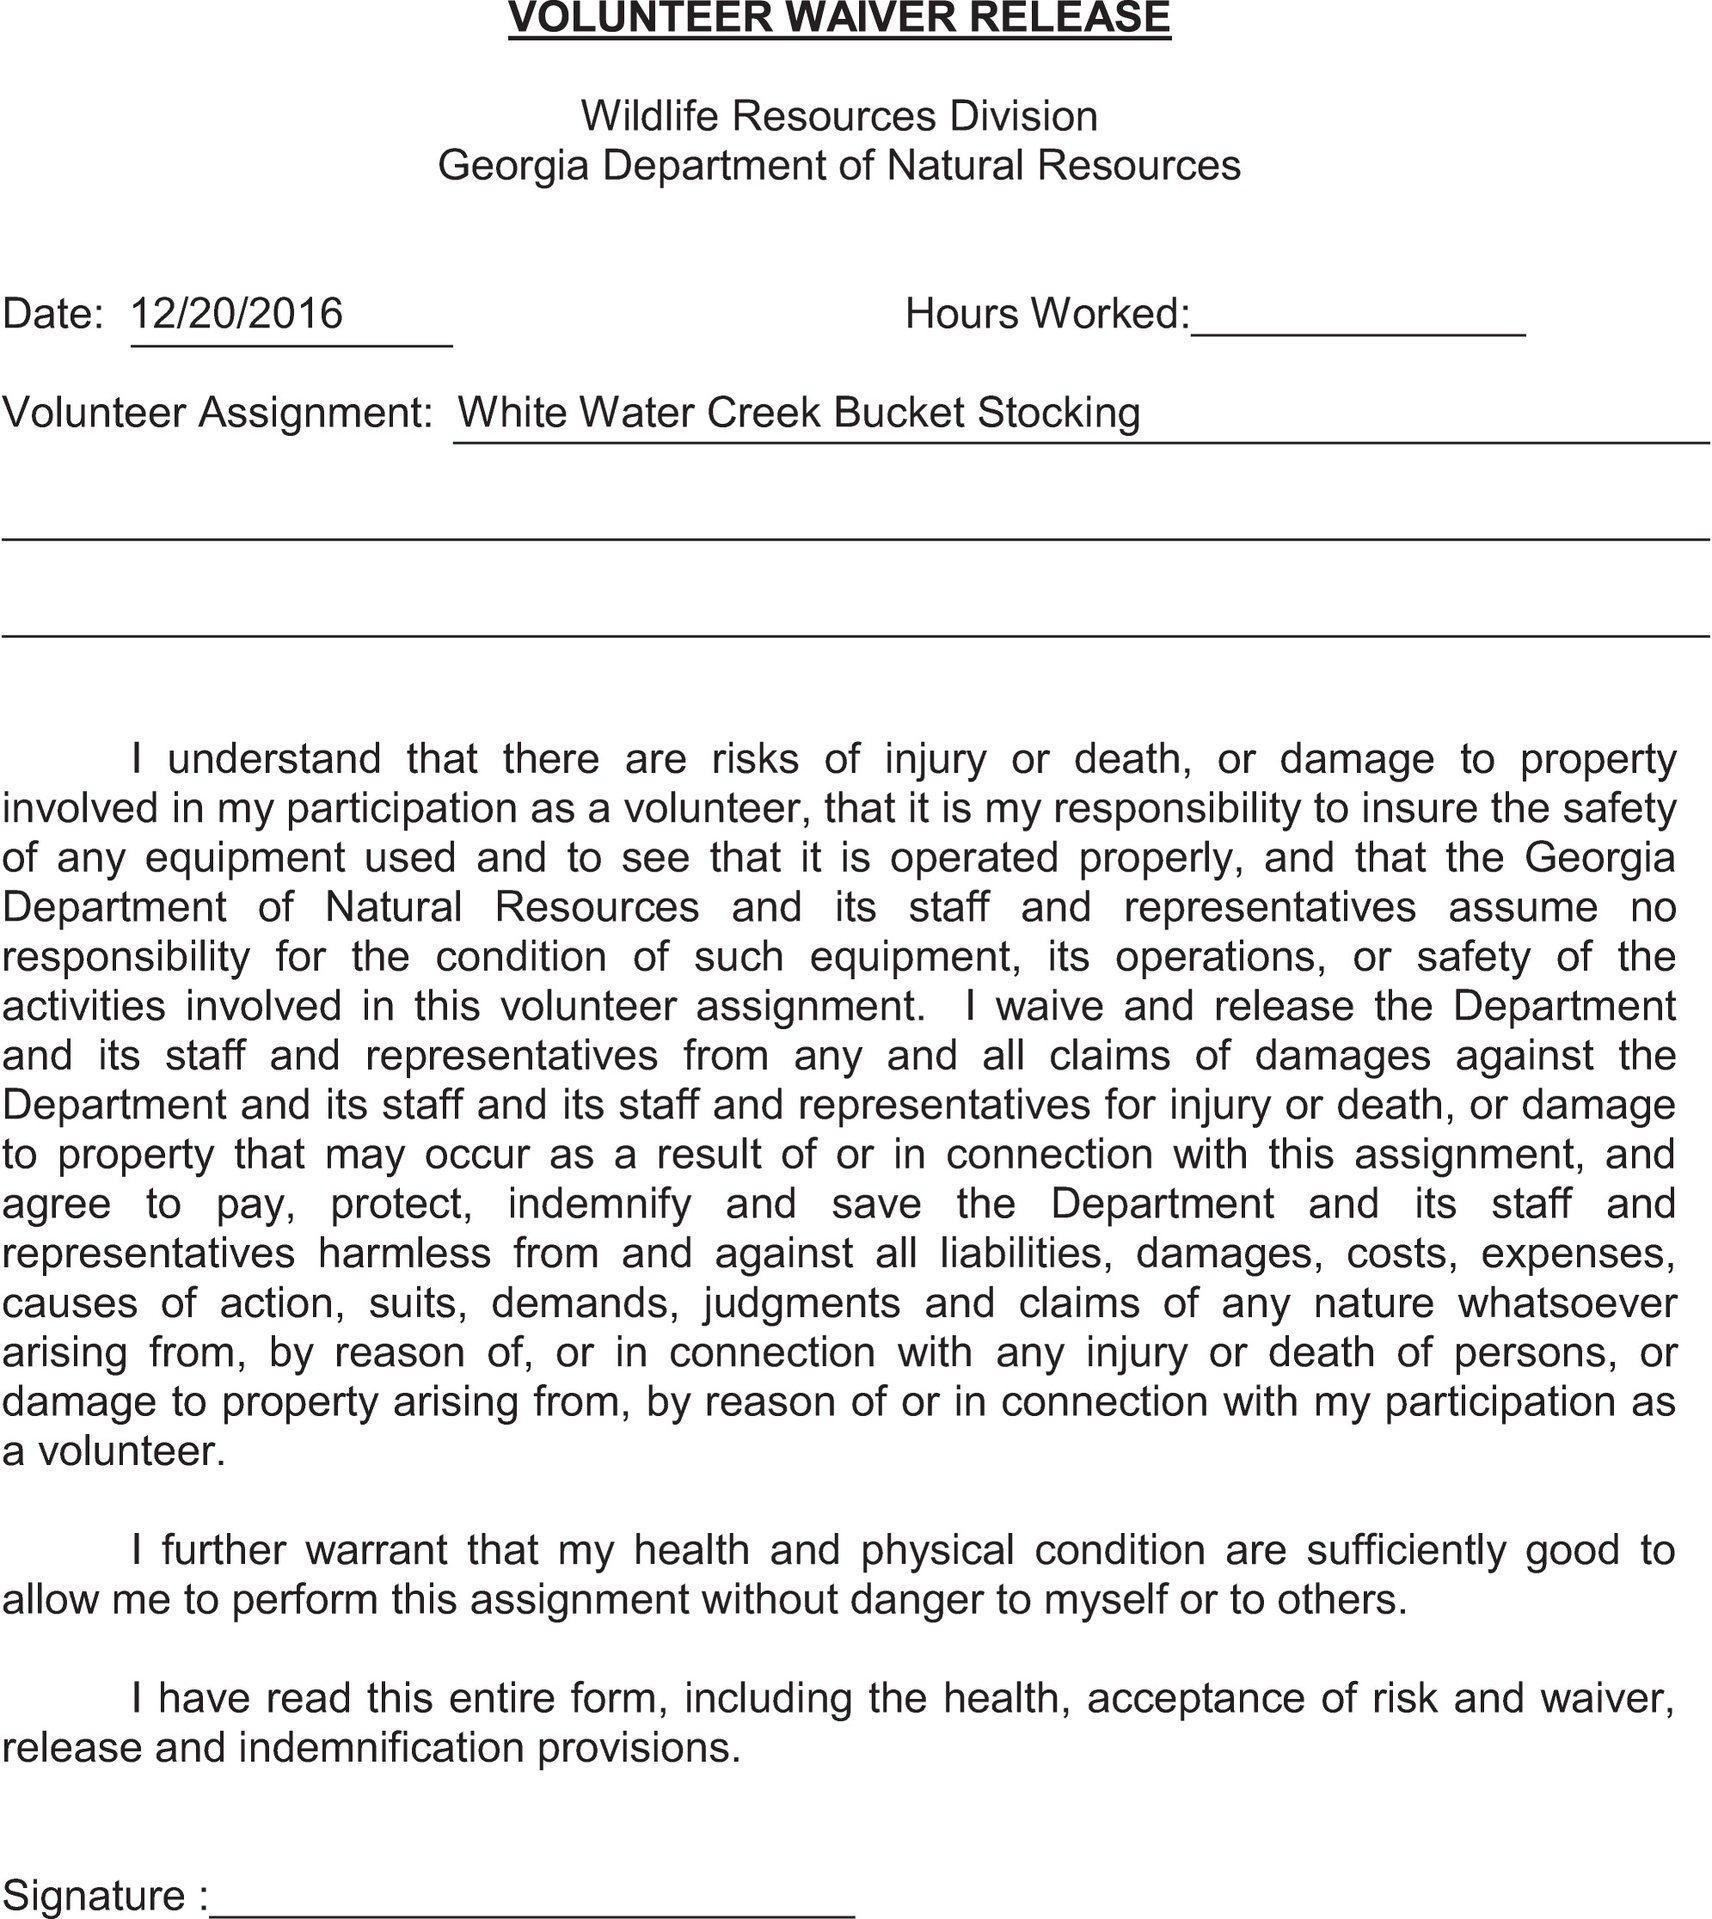 Chattahoochee Media Group - DNR stocking waiver form